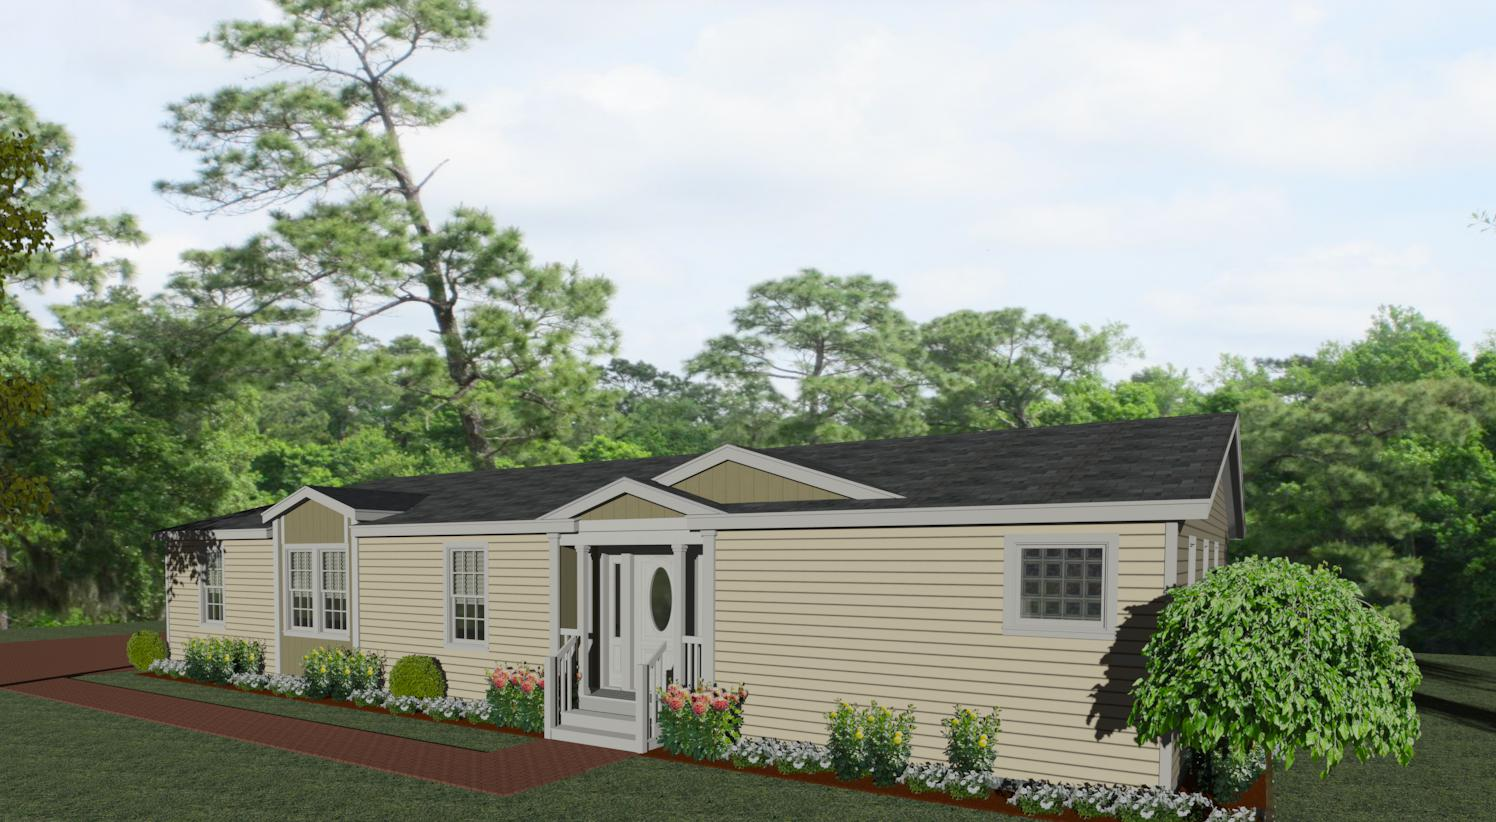 Image gallery tnr 7604 for Taylor made homes